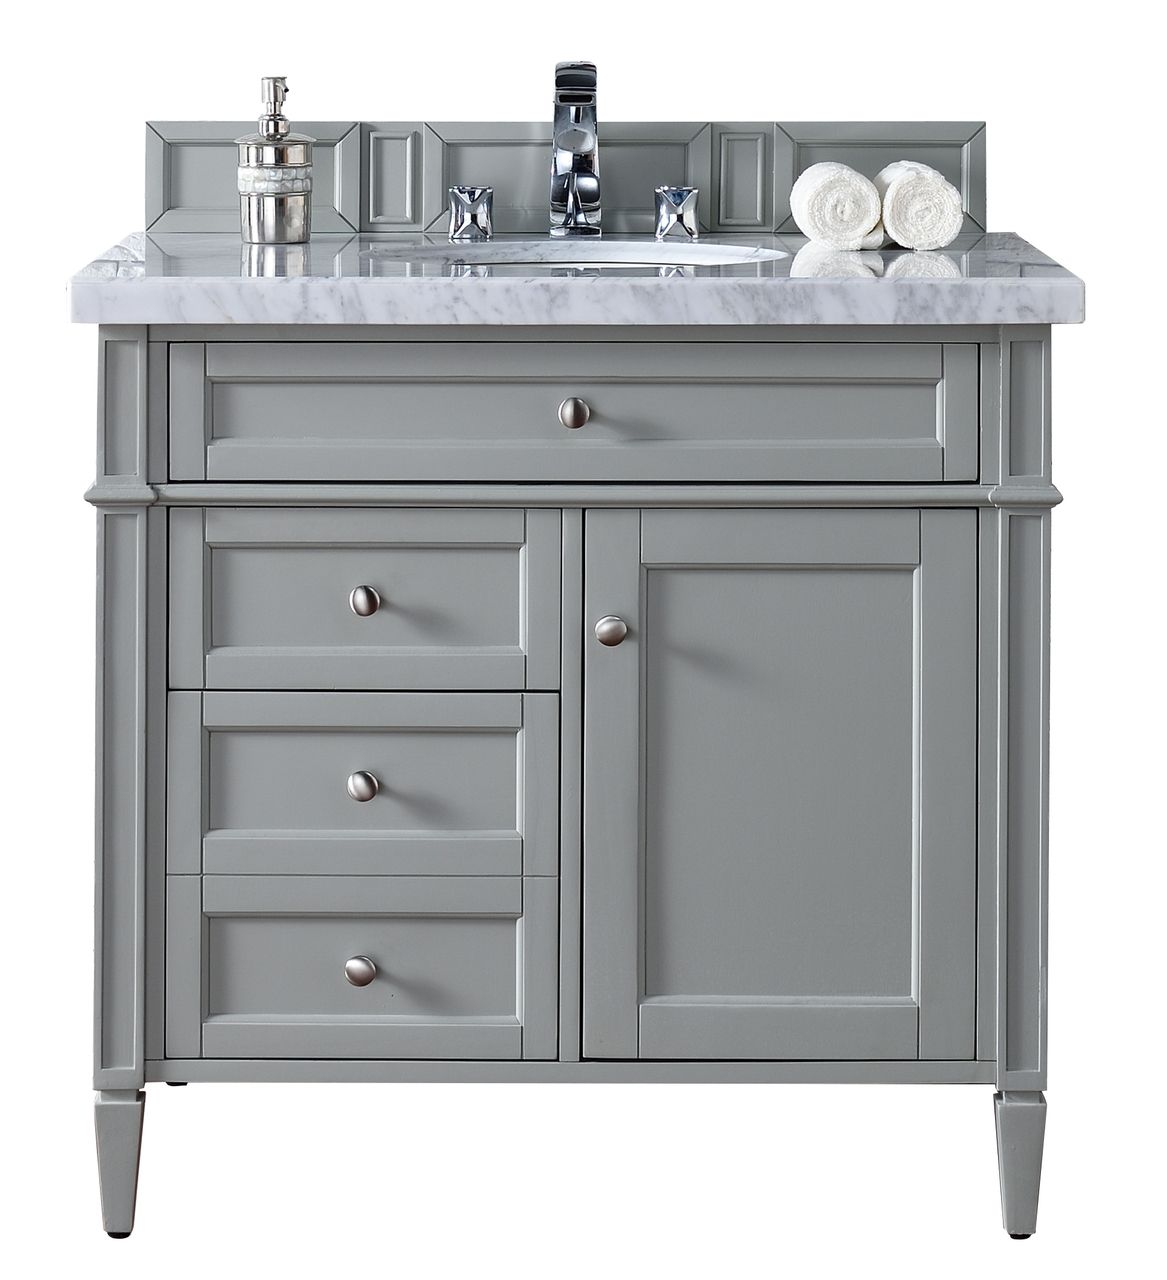 36 brittany single bathroom vanity urban gray grey bathroom vanity